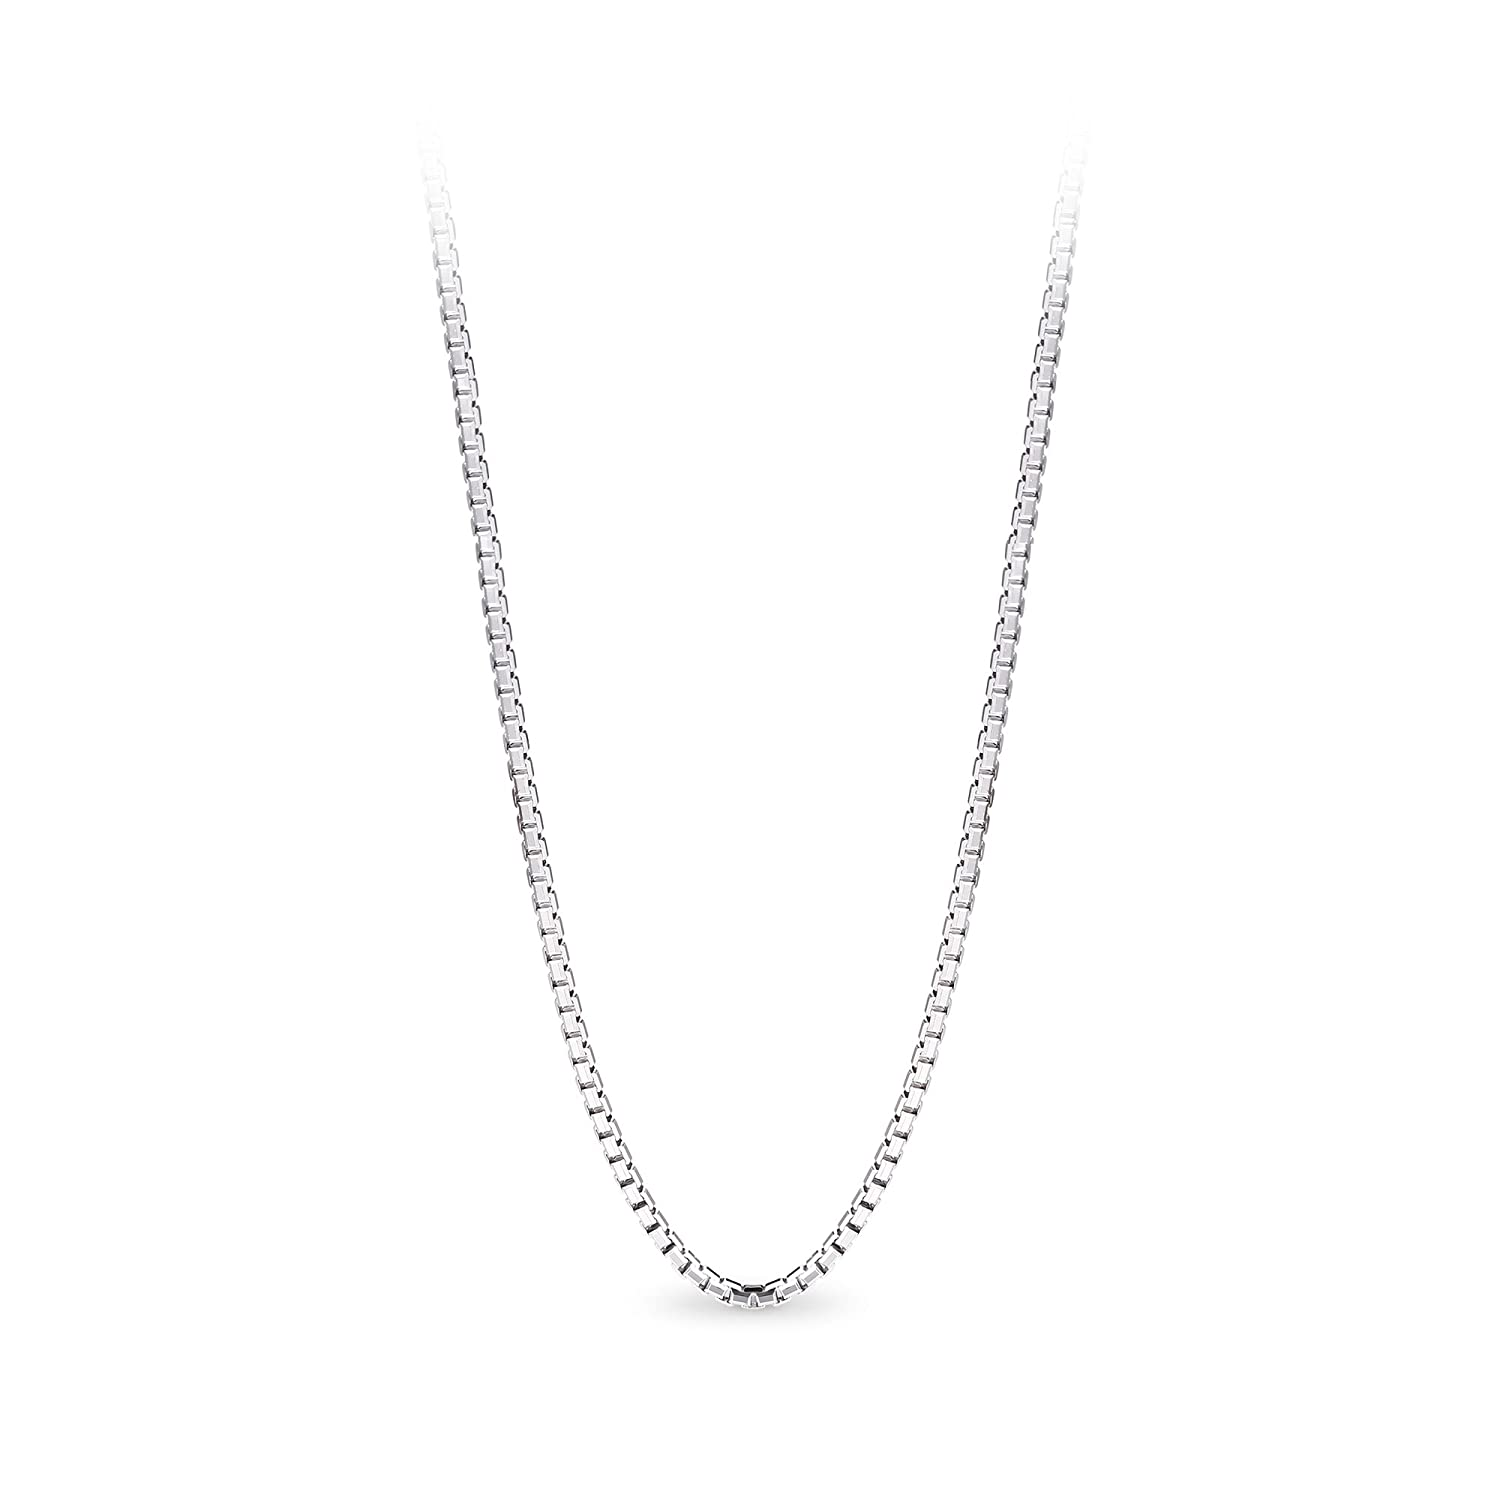 T400 Jewelers 925 Sterling Silver 1.5mm Box Chain Italian Necklace TB2542Y01A